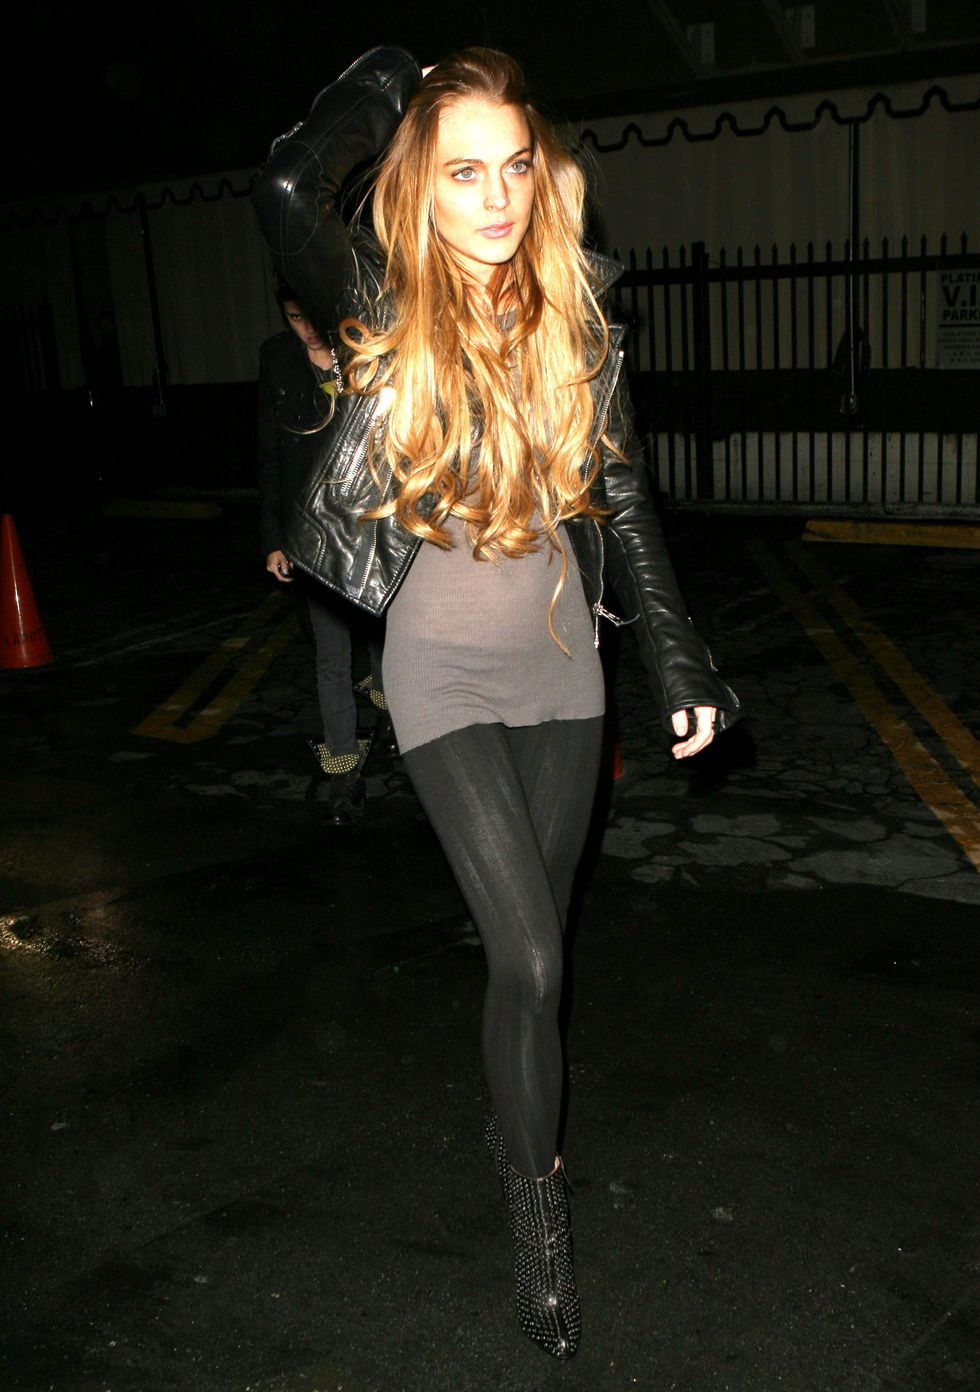 lindsay-lohan-at-bardot-nightclub-in-los-angeles-01